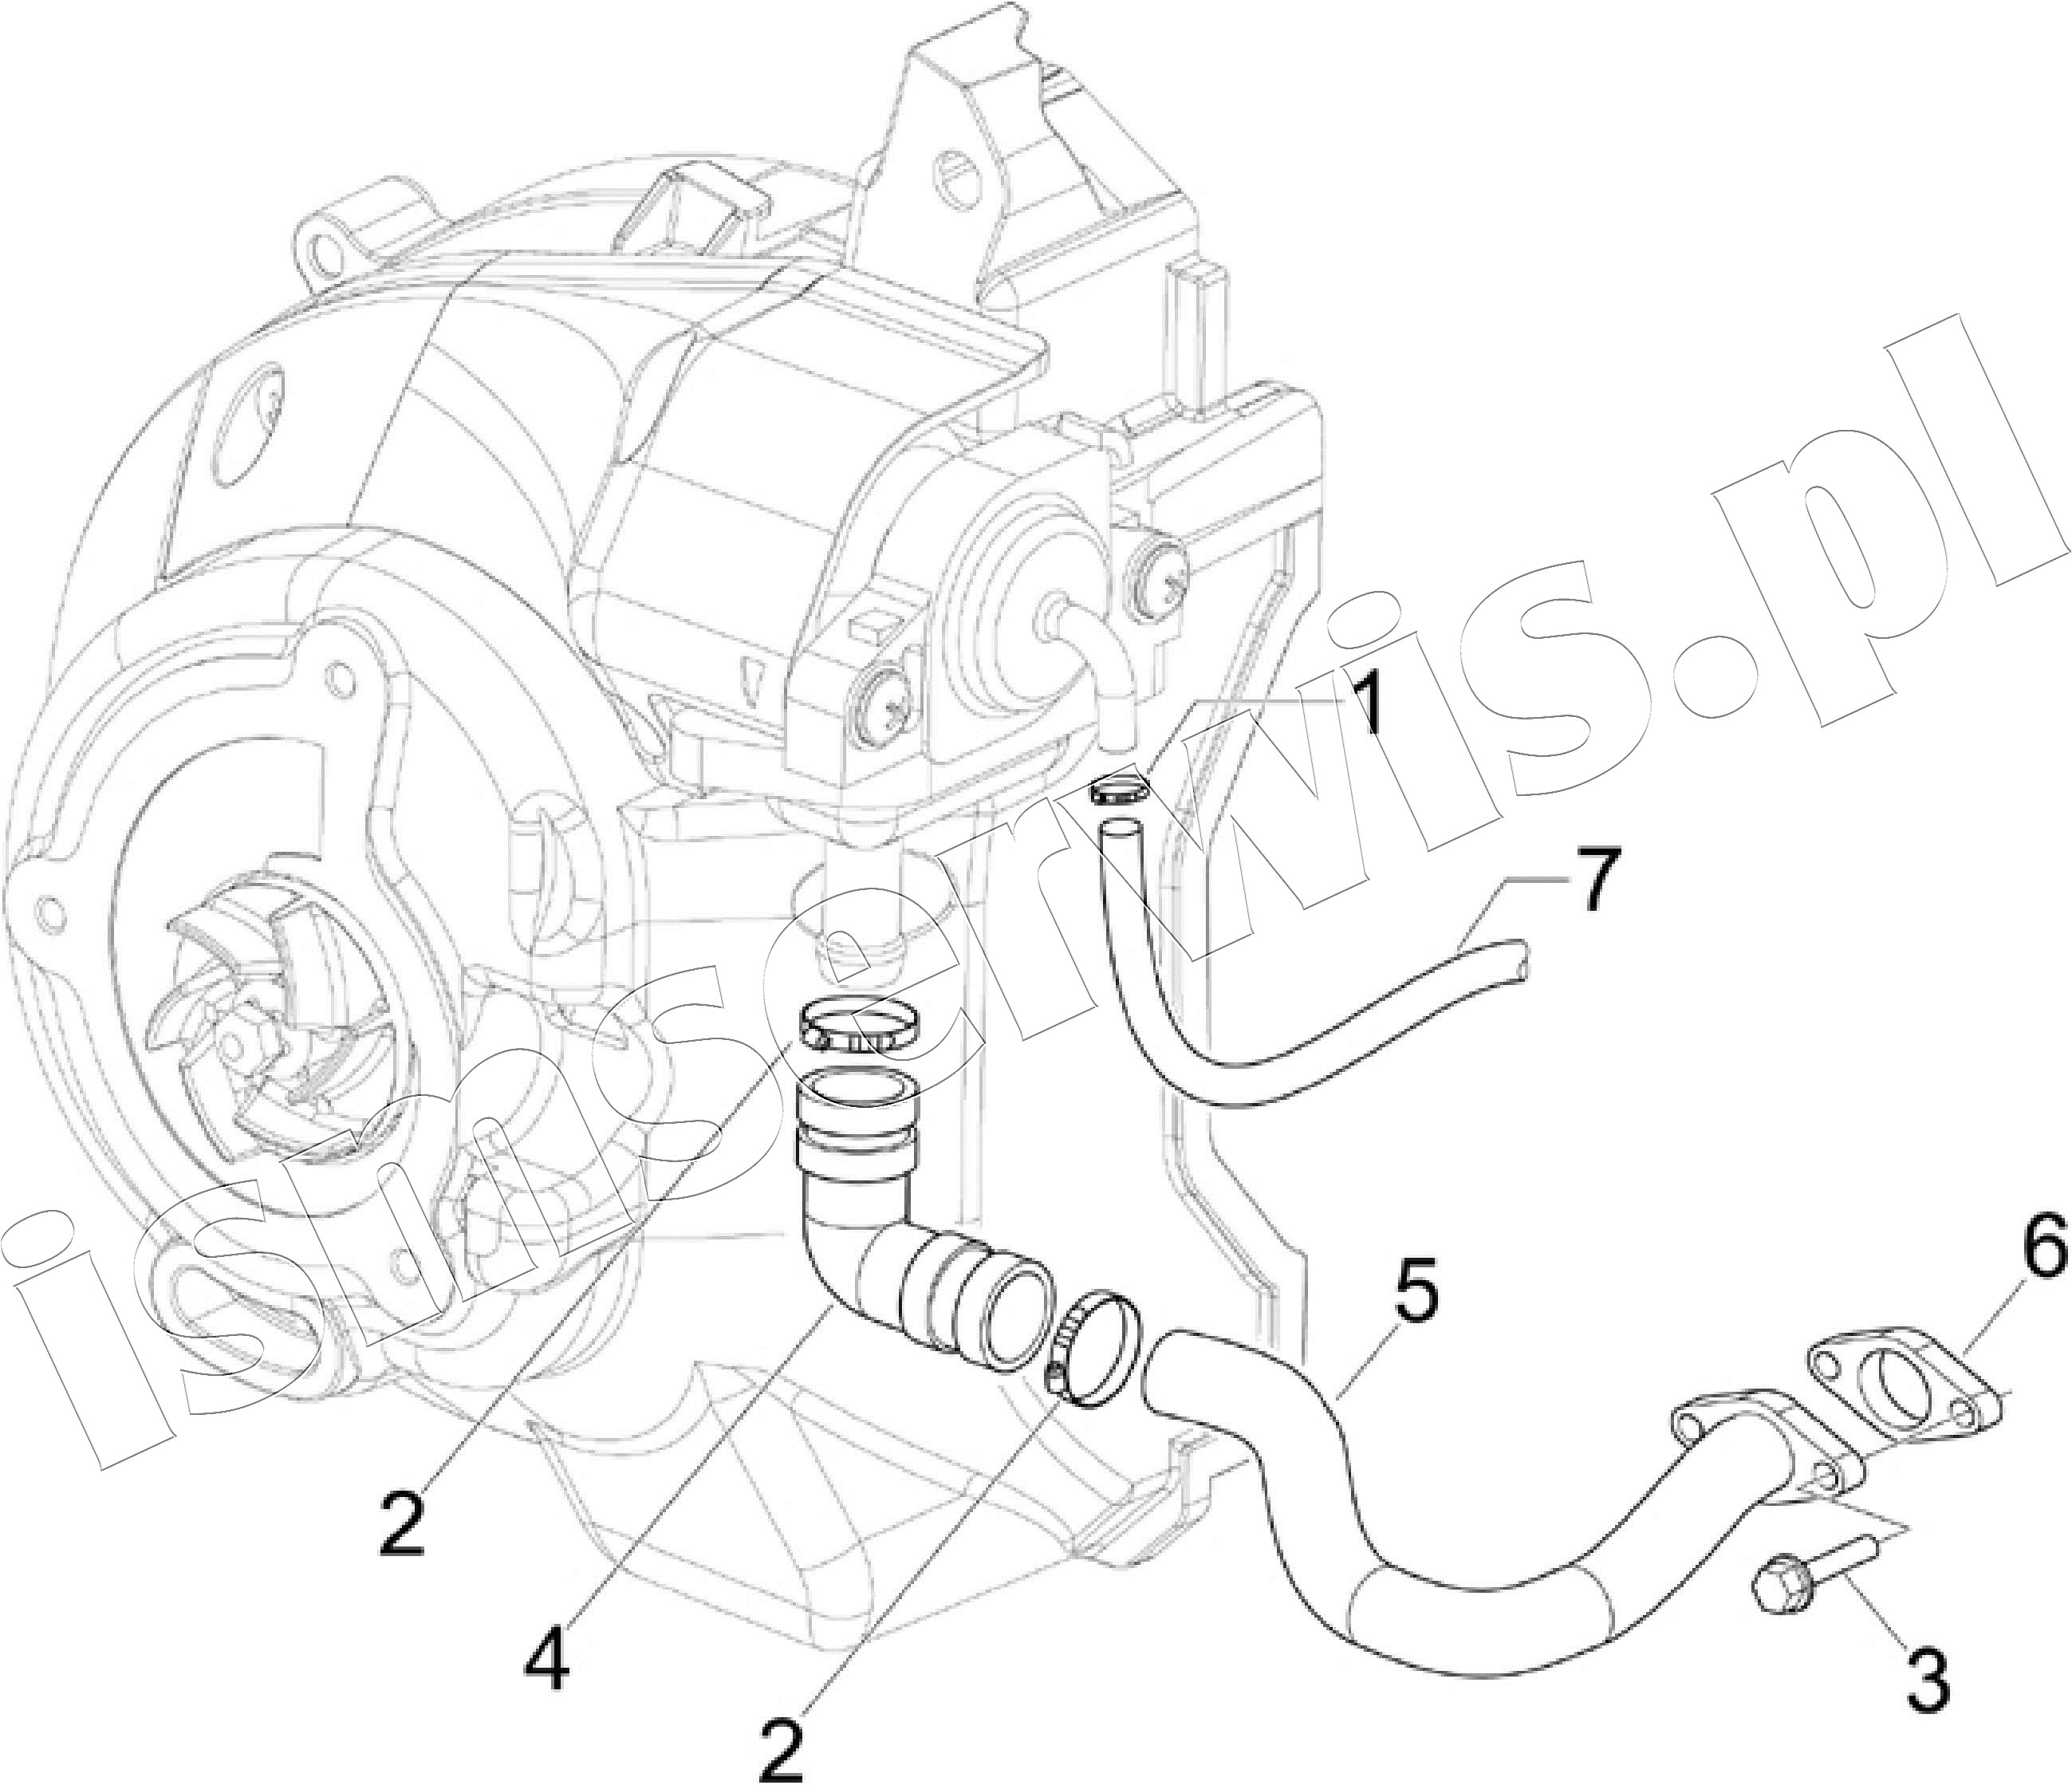 Wiring Harness And Cable Routing Diagram For 2006 Piaggio Mp3 125cc